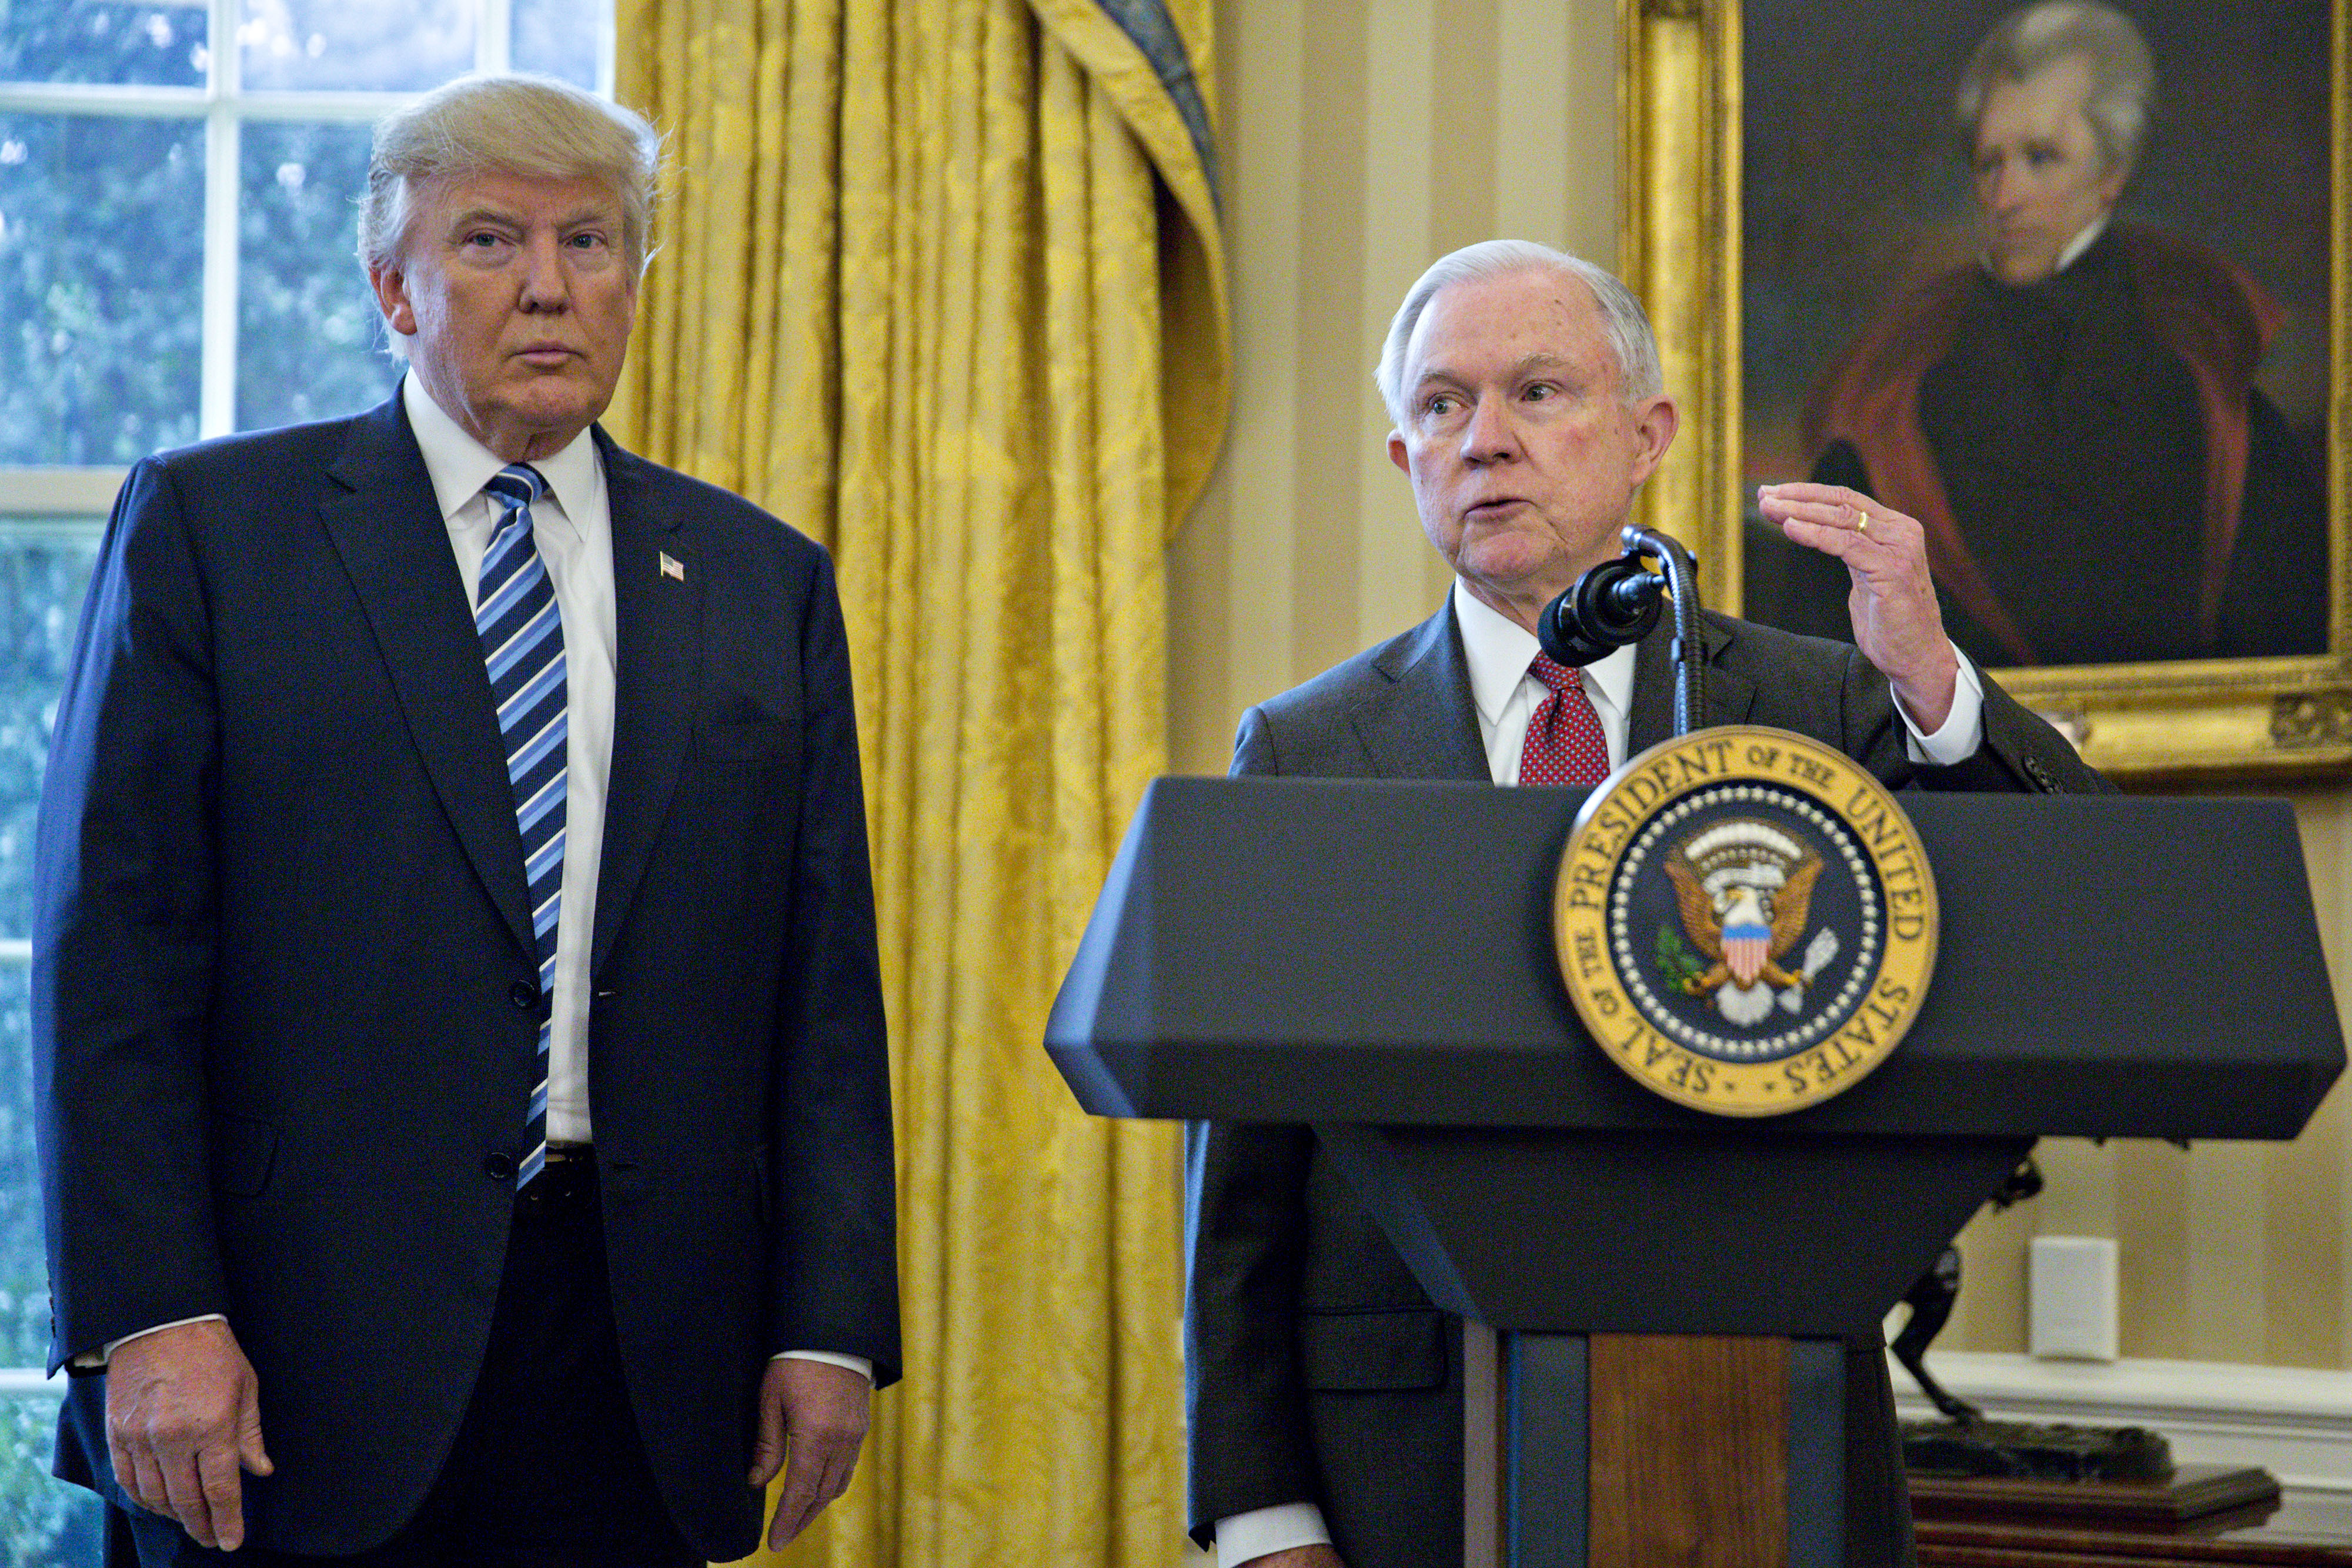 Jeff Sessions, U.S. attorney general, speaks as U.S. President Donald Trump, left, listens after Sessions was sworn in by U.S. Vice President Mike Pence, not pictured, in the Oval Office of the White House in Washington, D.C., U.S., on Thursday, Feb. 9, 2017.